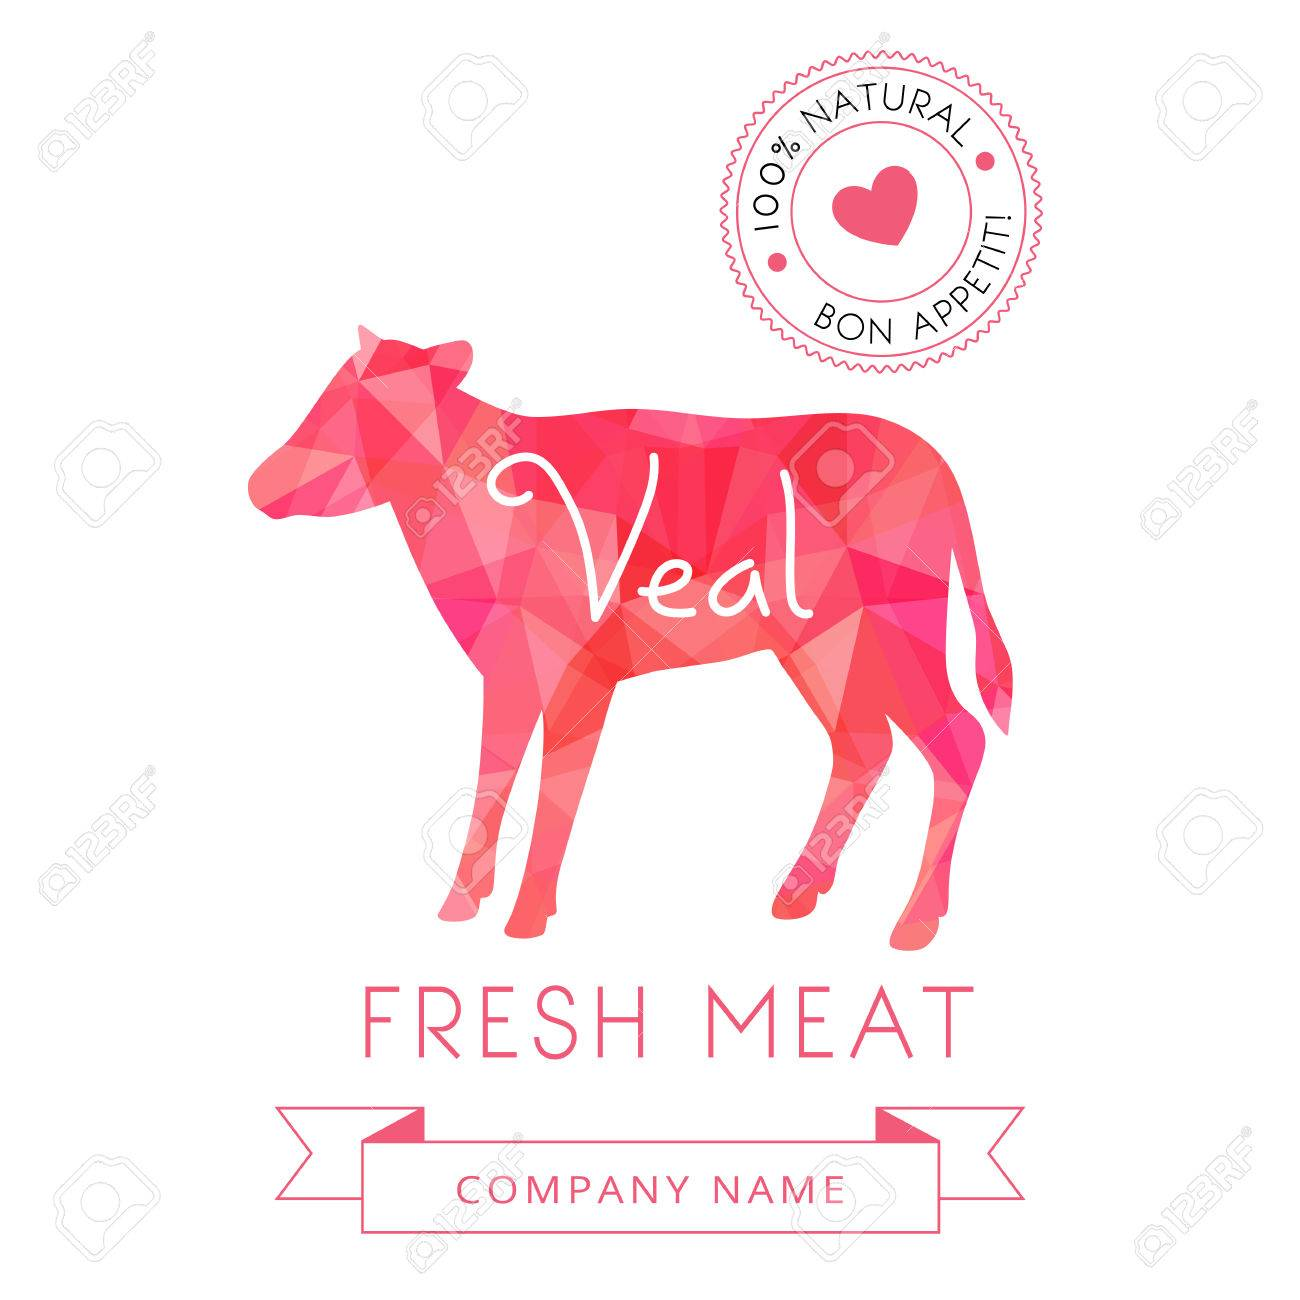 Image meat symbol veal silhouettes of animal for design menus, recipes and packages product. Vector Illustration. - 49852810